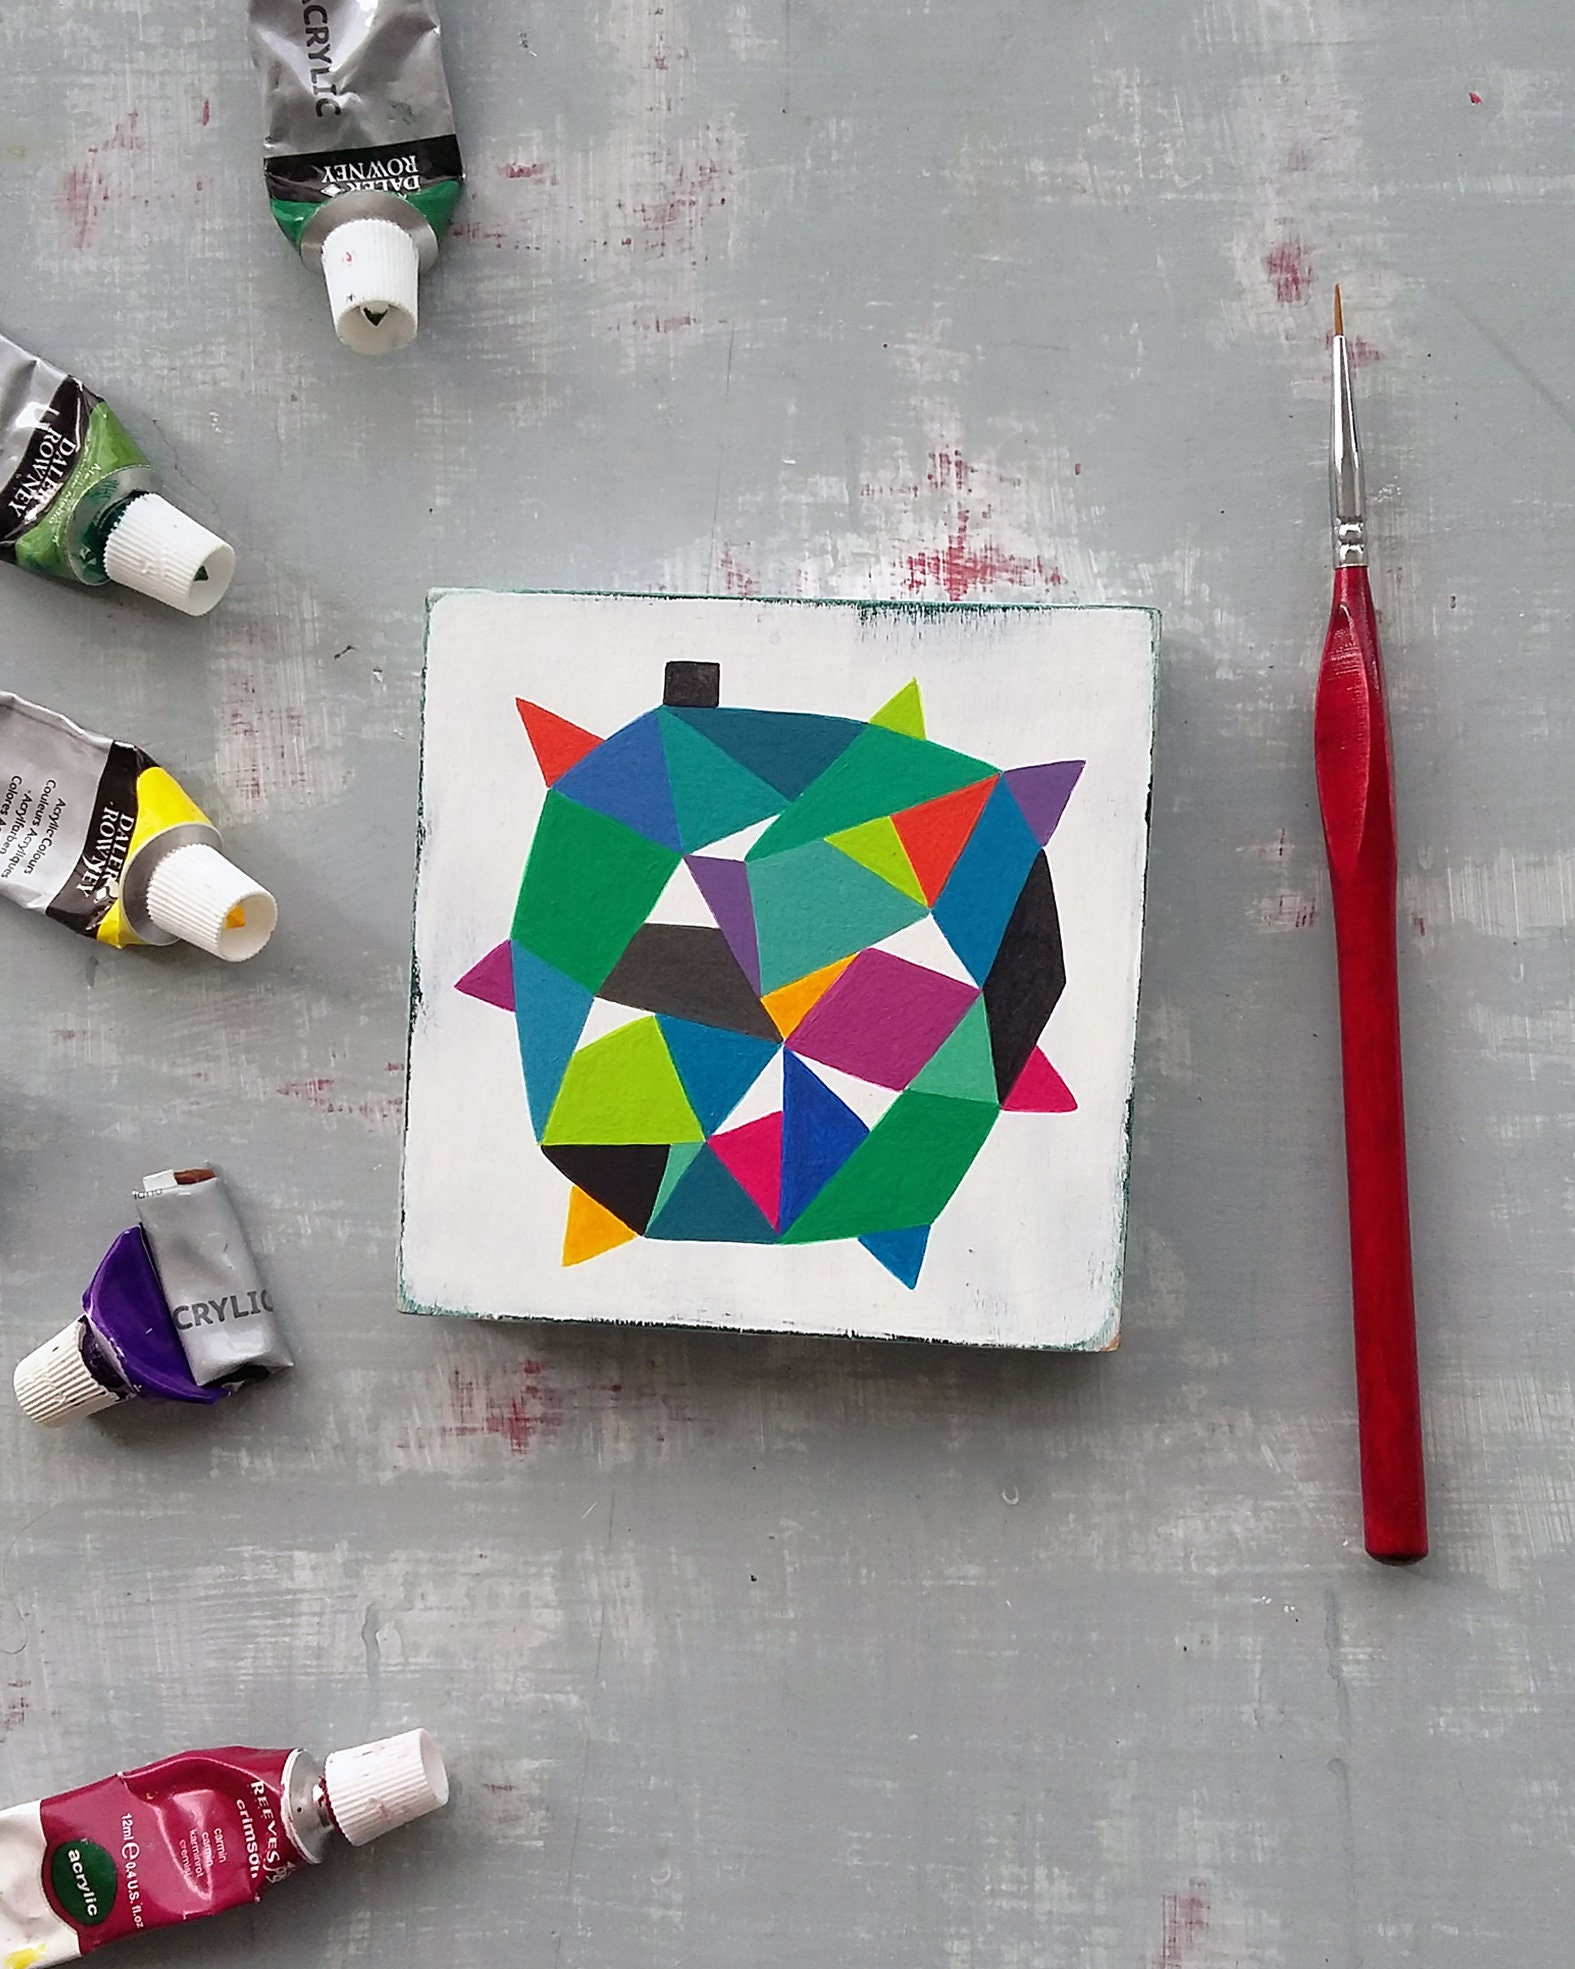 Star_004, colourful original hard edge painting - product image